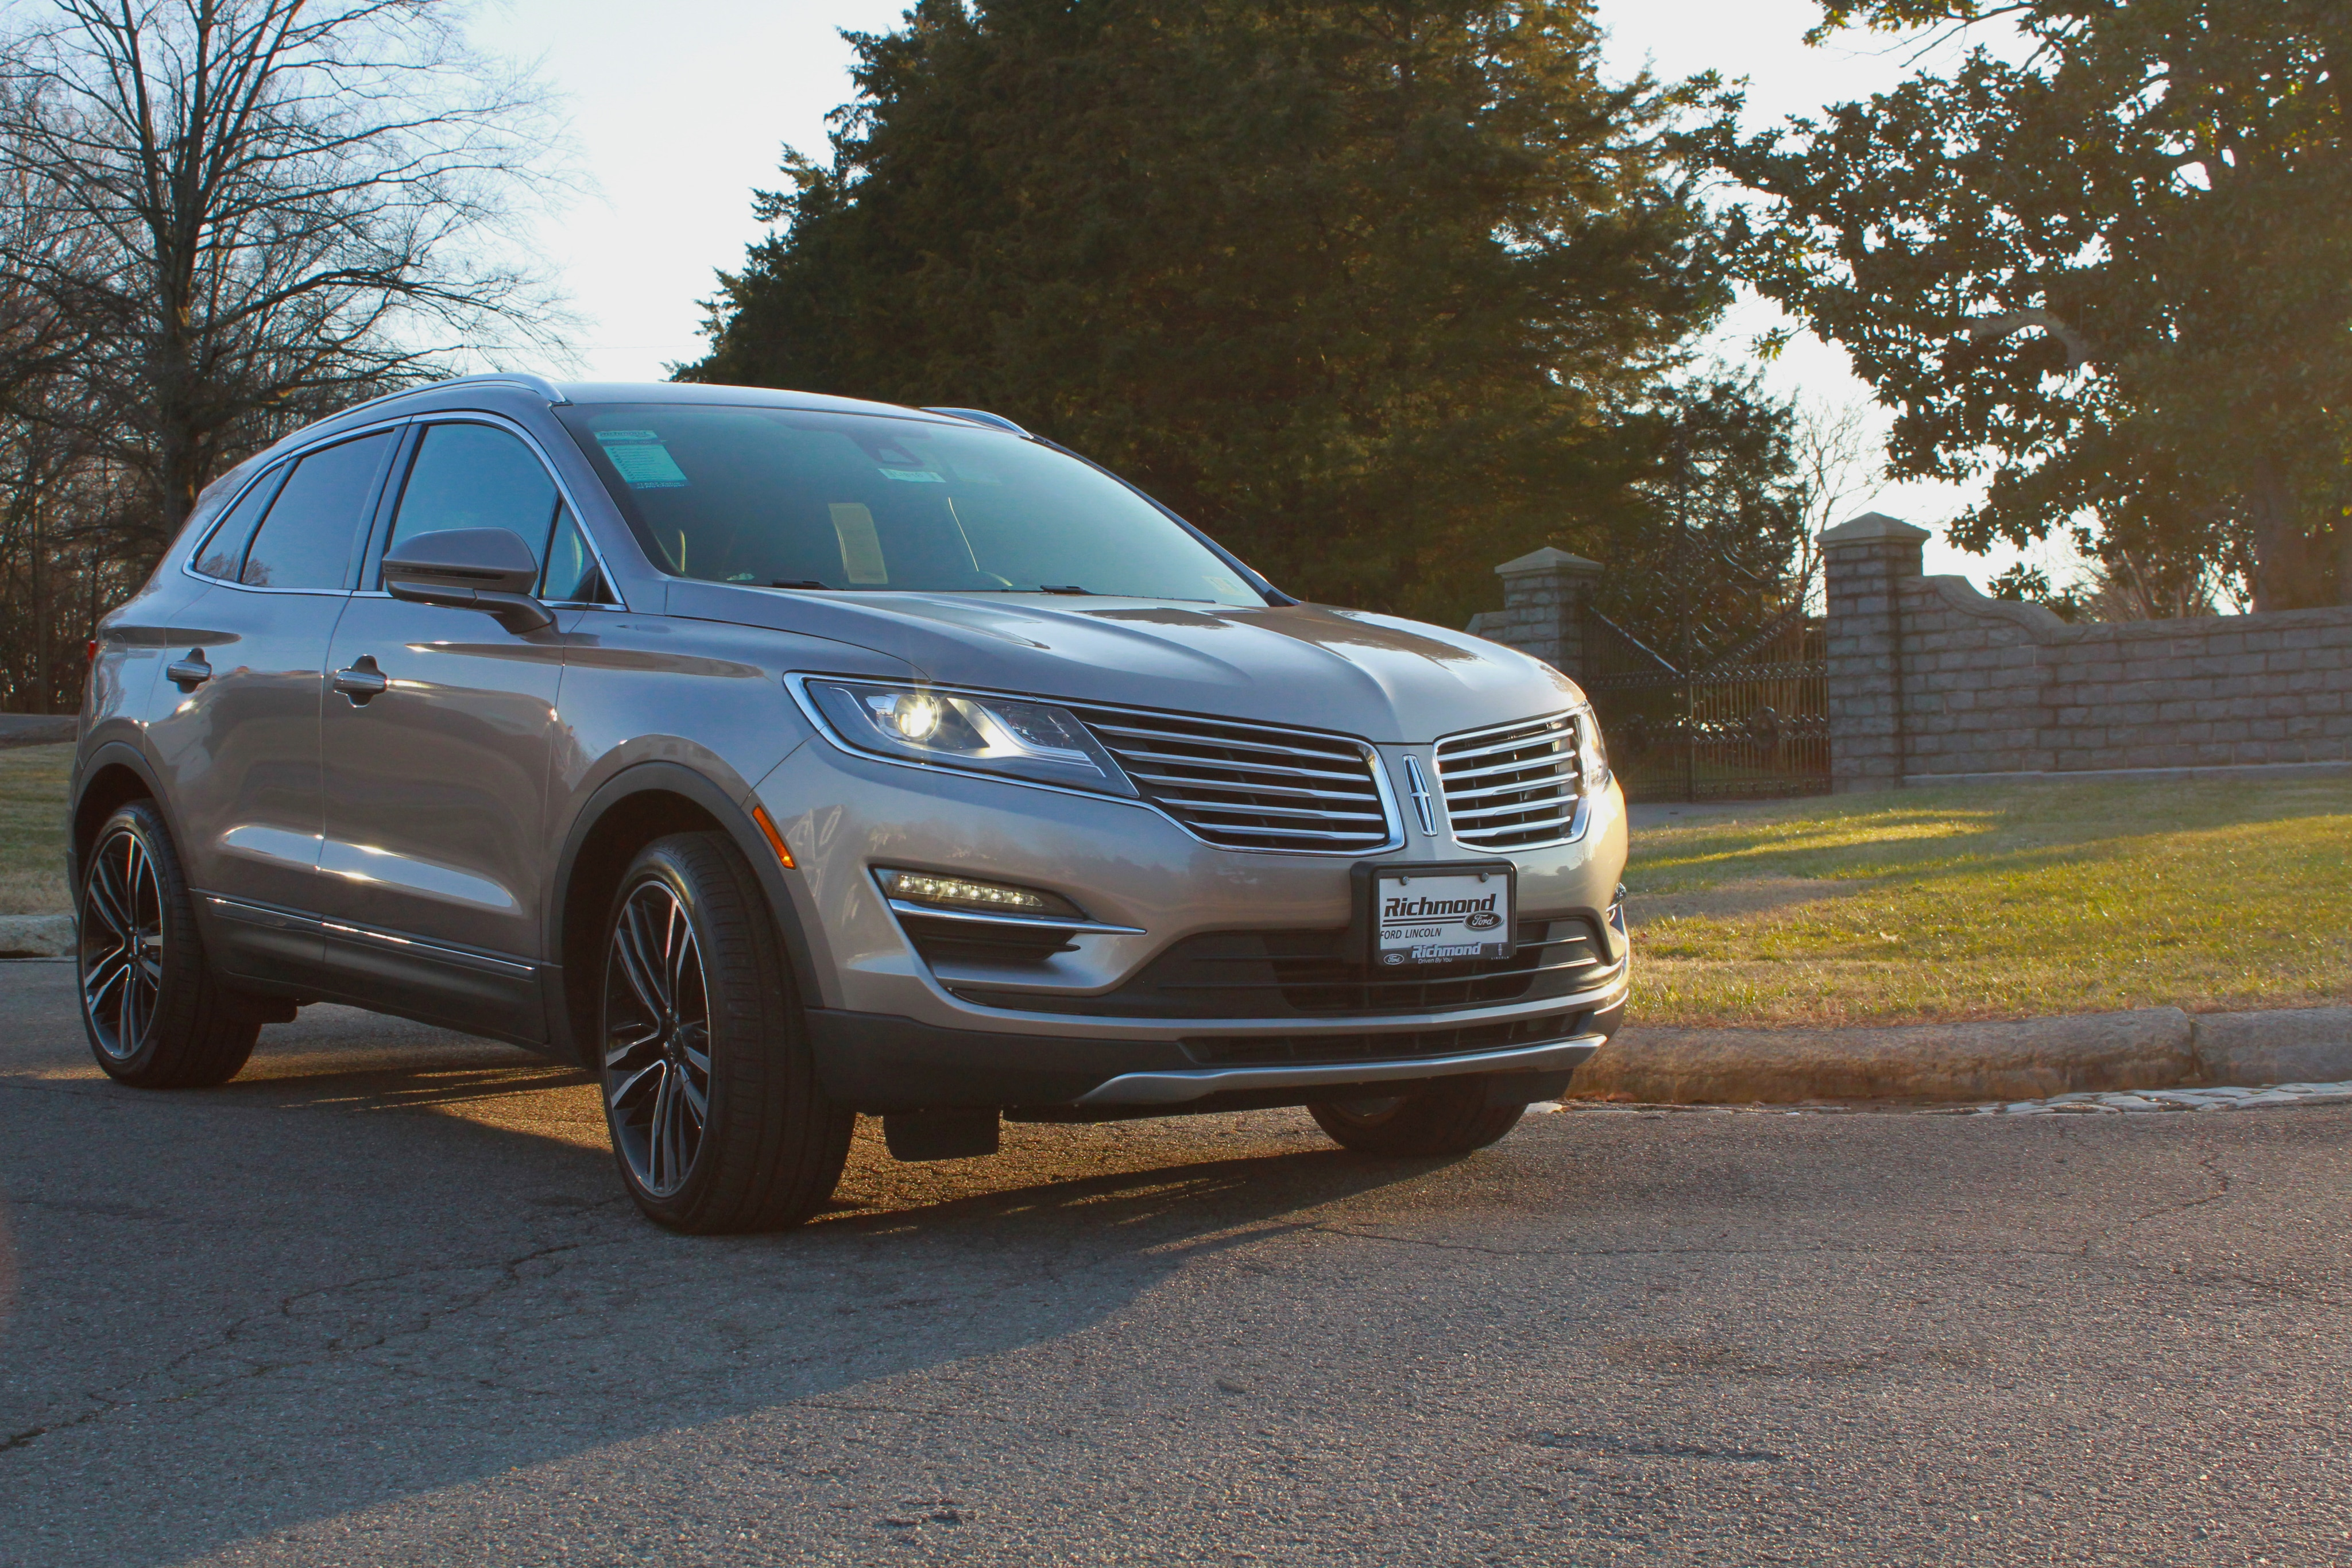 and that step authentic level lincoln delights finish up fit one use the found significant of tail inside a great is interpretation modern materials for we luxury american mkc